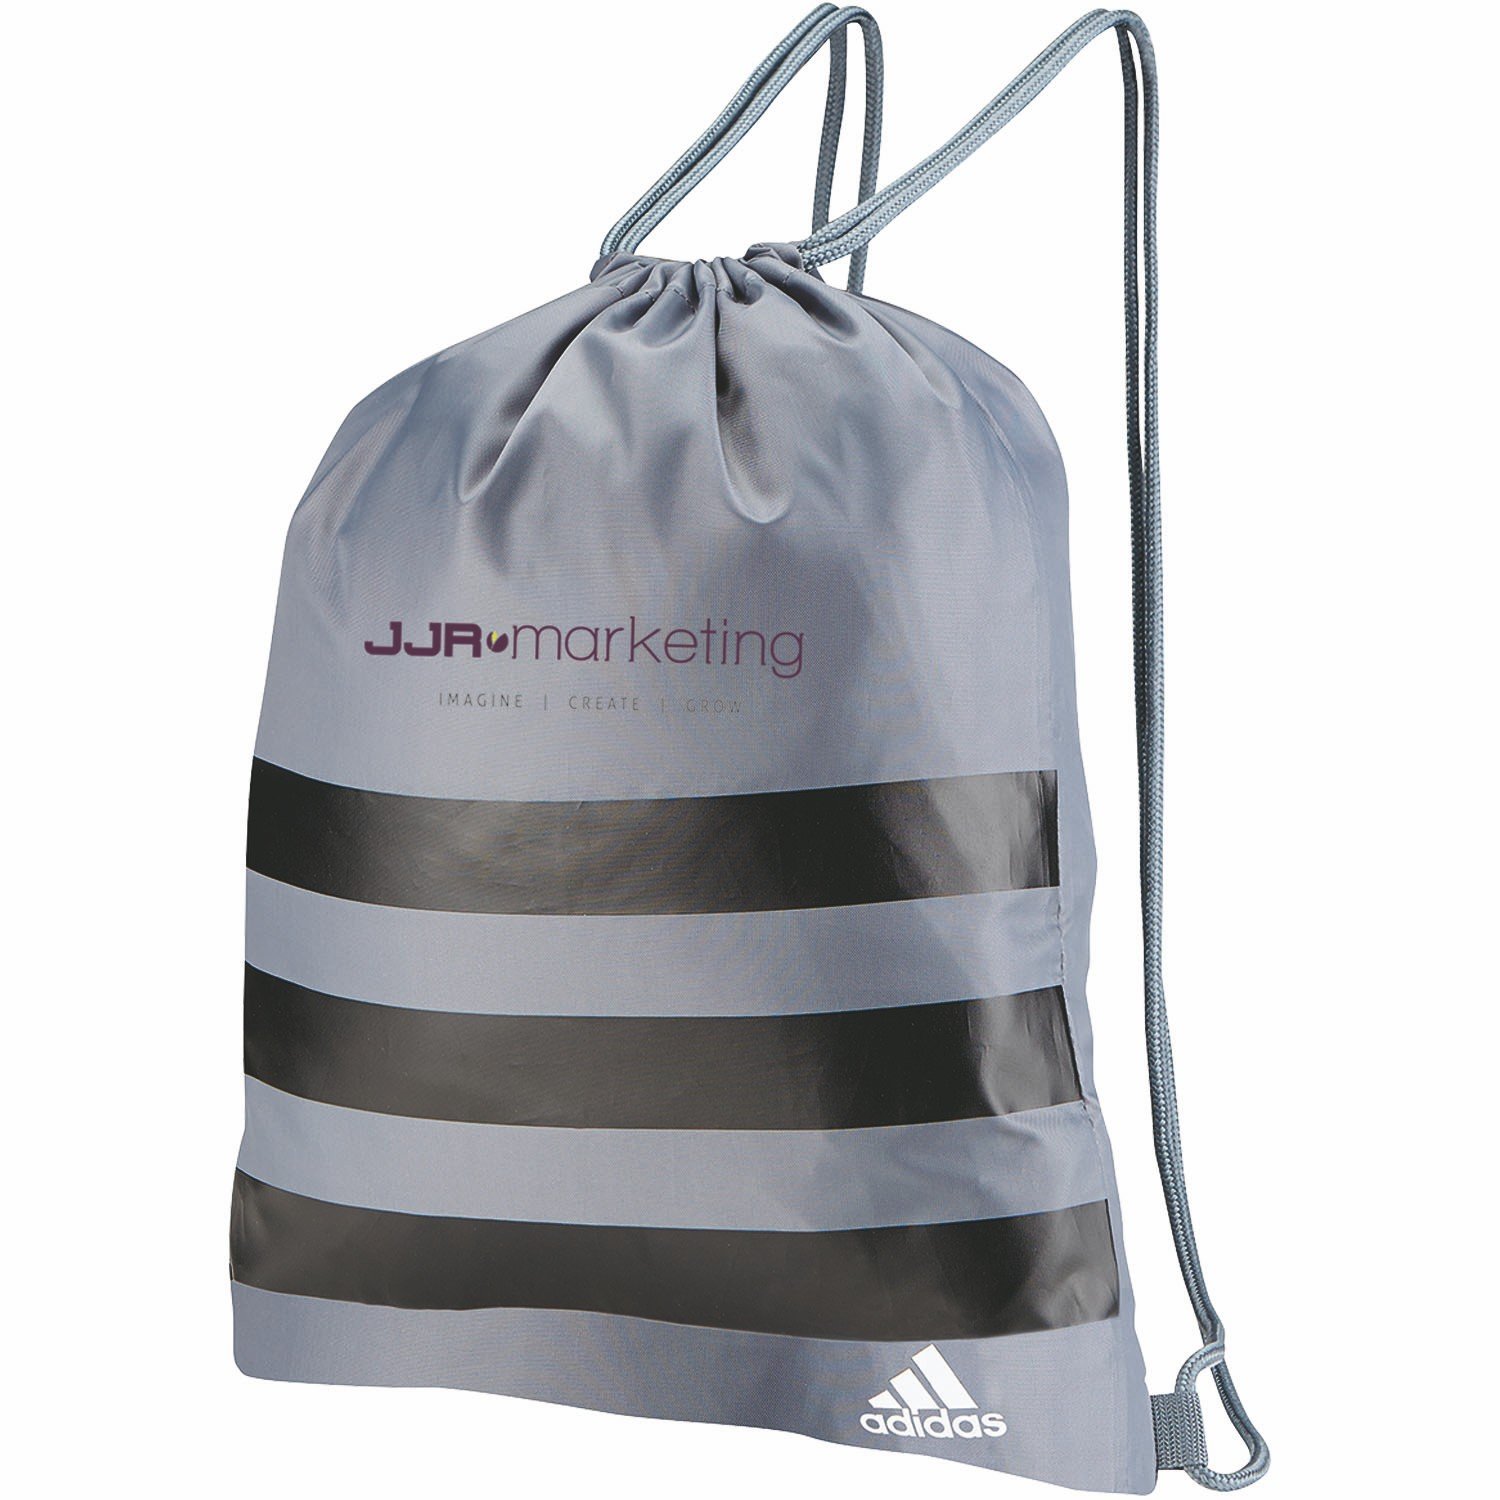 Adidas 3 Stripe Tote Bag